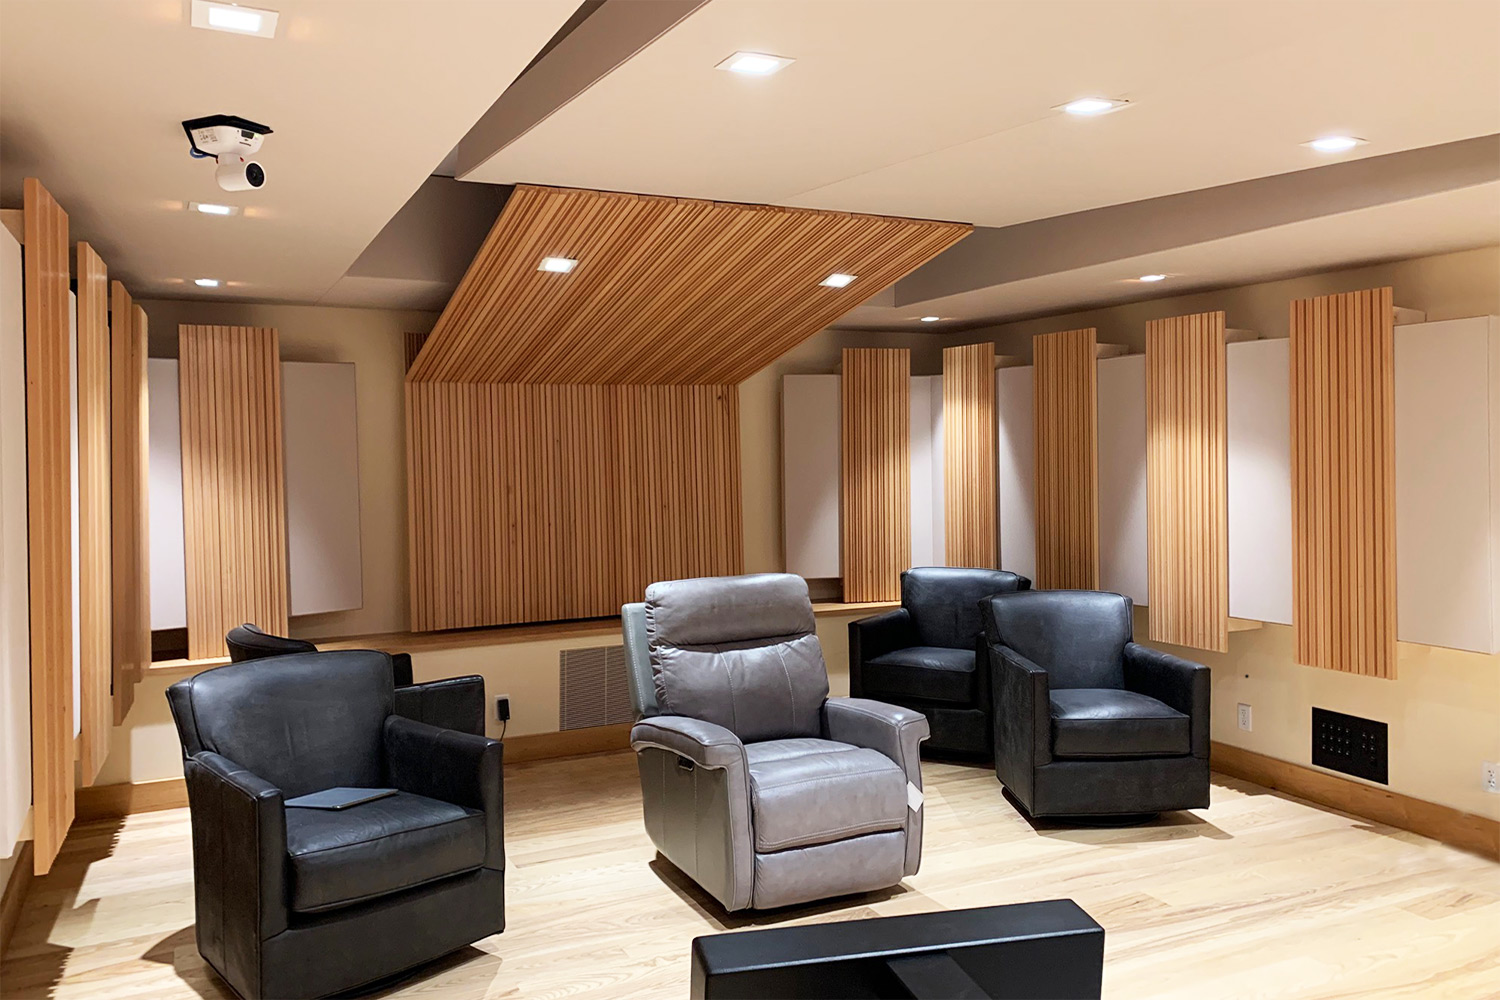 Luxury minimalistic audiophile listening room in a private residence in upstate New York. Acoustic isolation and A/V Systems design by WSDG. Listening Room back.